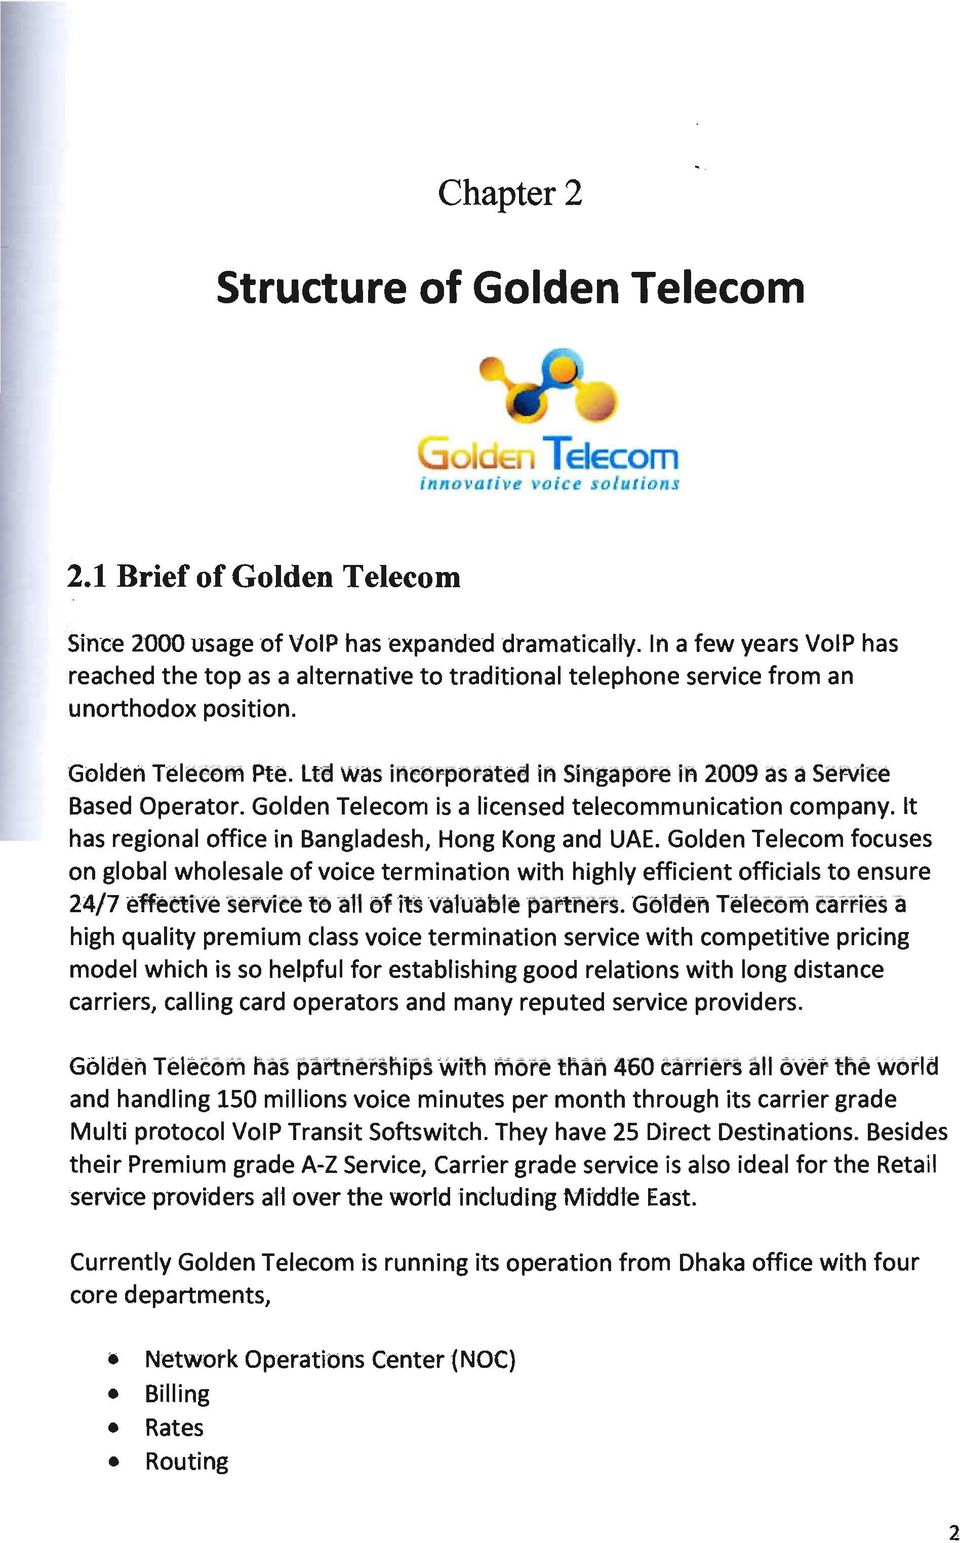 gaf)Or'e in 2009 as a SeNiee Based Operator. Golden Telecom is a licensed telecommunication company. It has regional office in Bangladesh, Hong Kong and UAE.